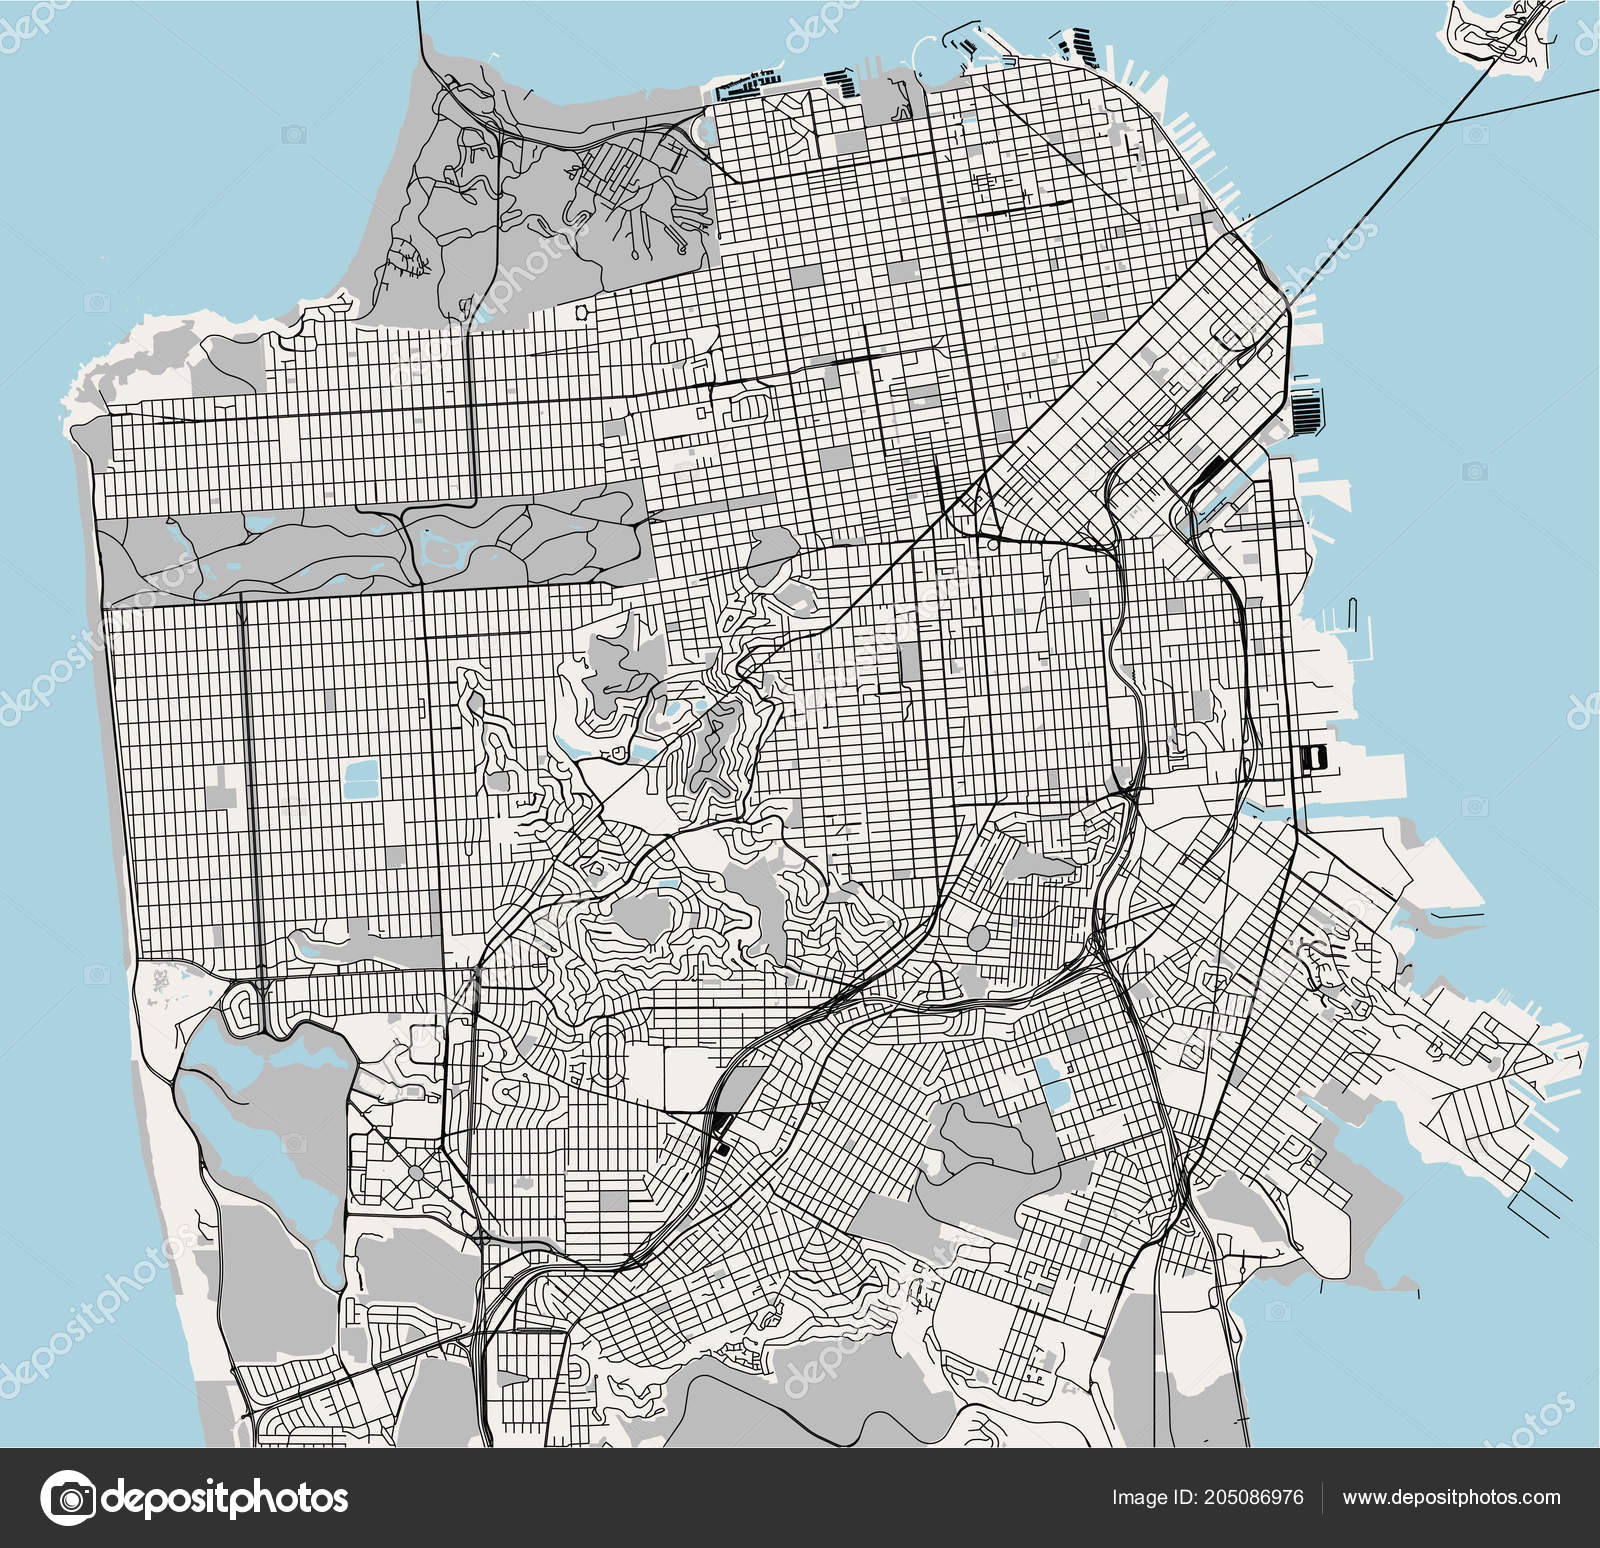 Vector: san francisco map | Vector Map City San Francisco ... on western north carolina city map, seattle city map, london city map, sfo city map, traverse city city map, dfw city map, alvin city map, new roads city map, fresno county city map, los angeles city map, pagosa springs city map, bay area city map, princeton city map, north county san diego city map, university of chicago city map, park city city map, reynosa city map, napa county city map, butte county city map, west point city map,